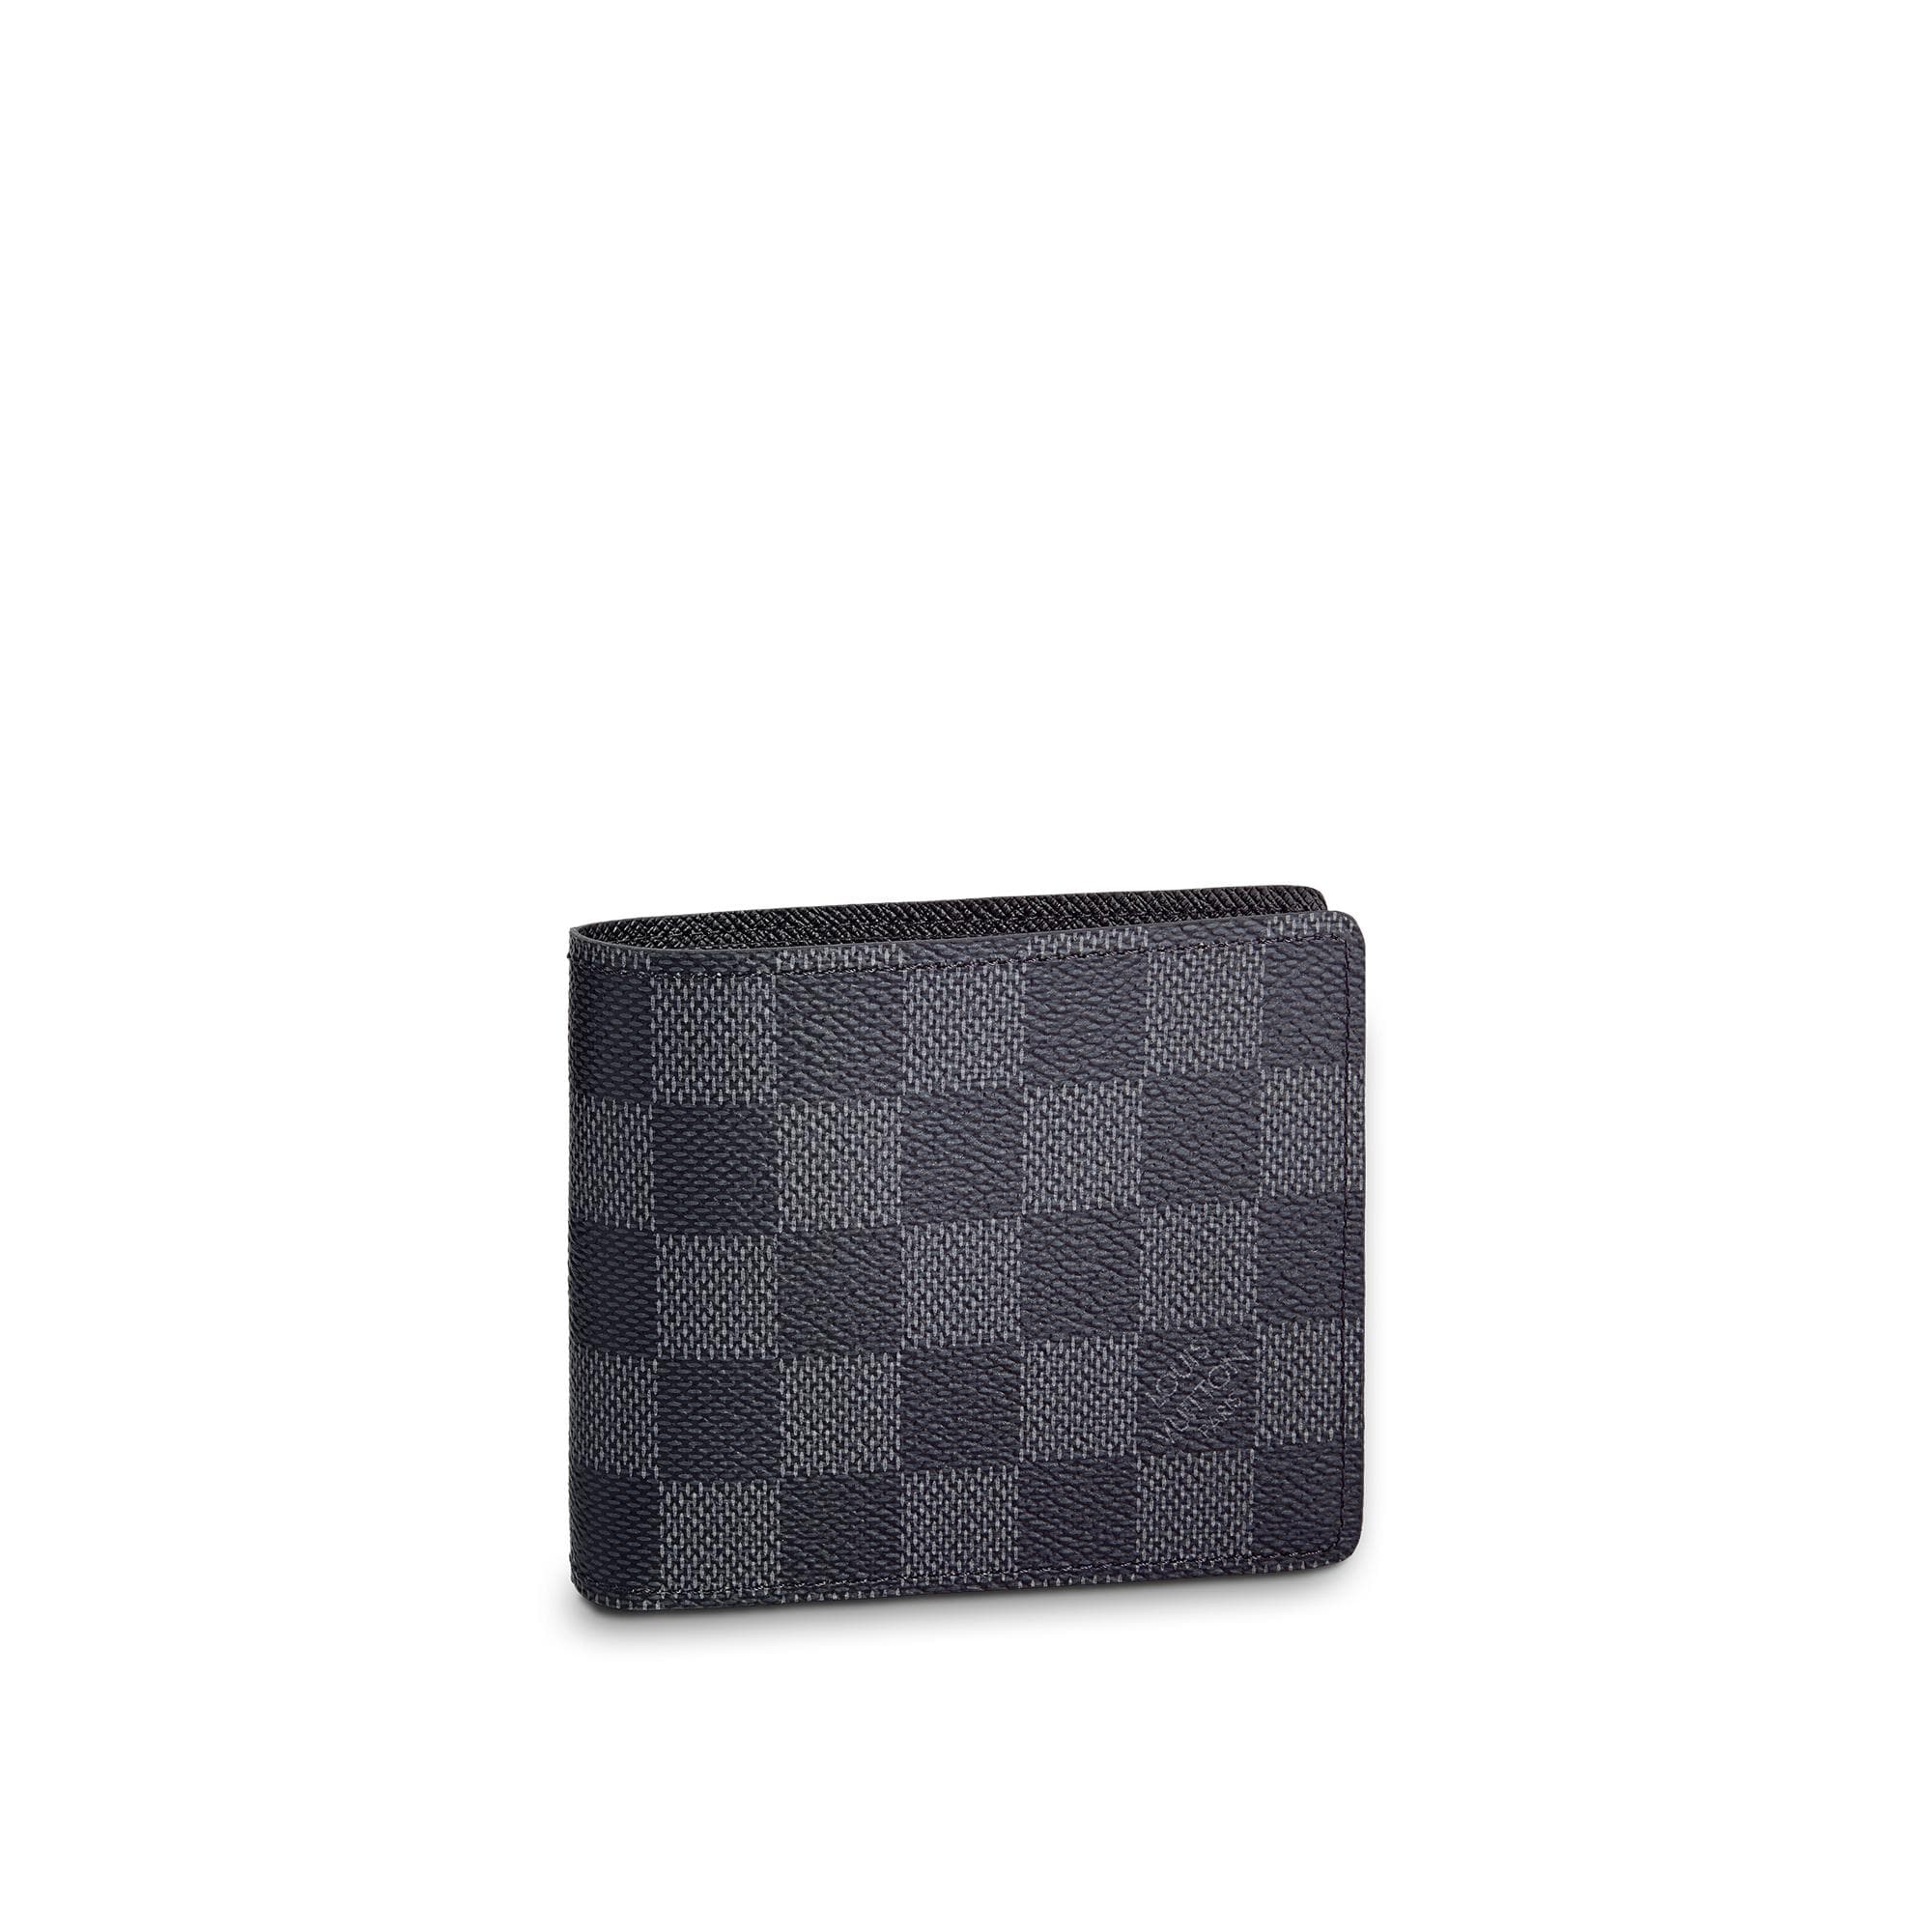 Slender Wallet Damier Graphite Canvas  SMALL LEATHER